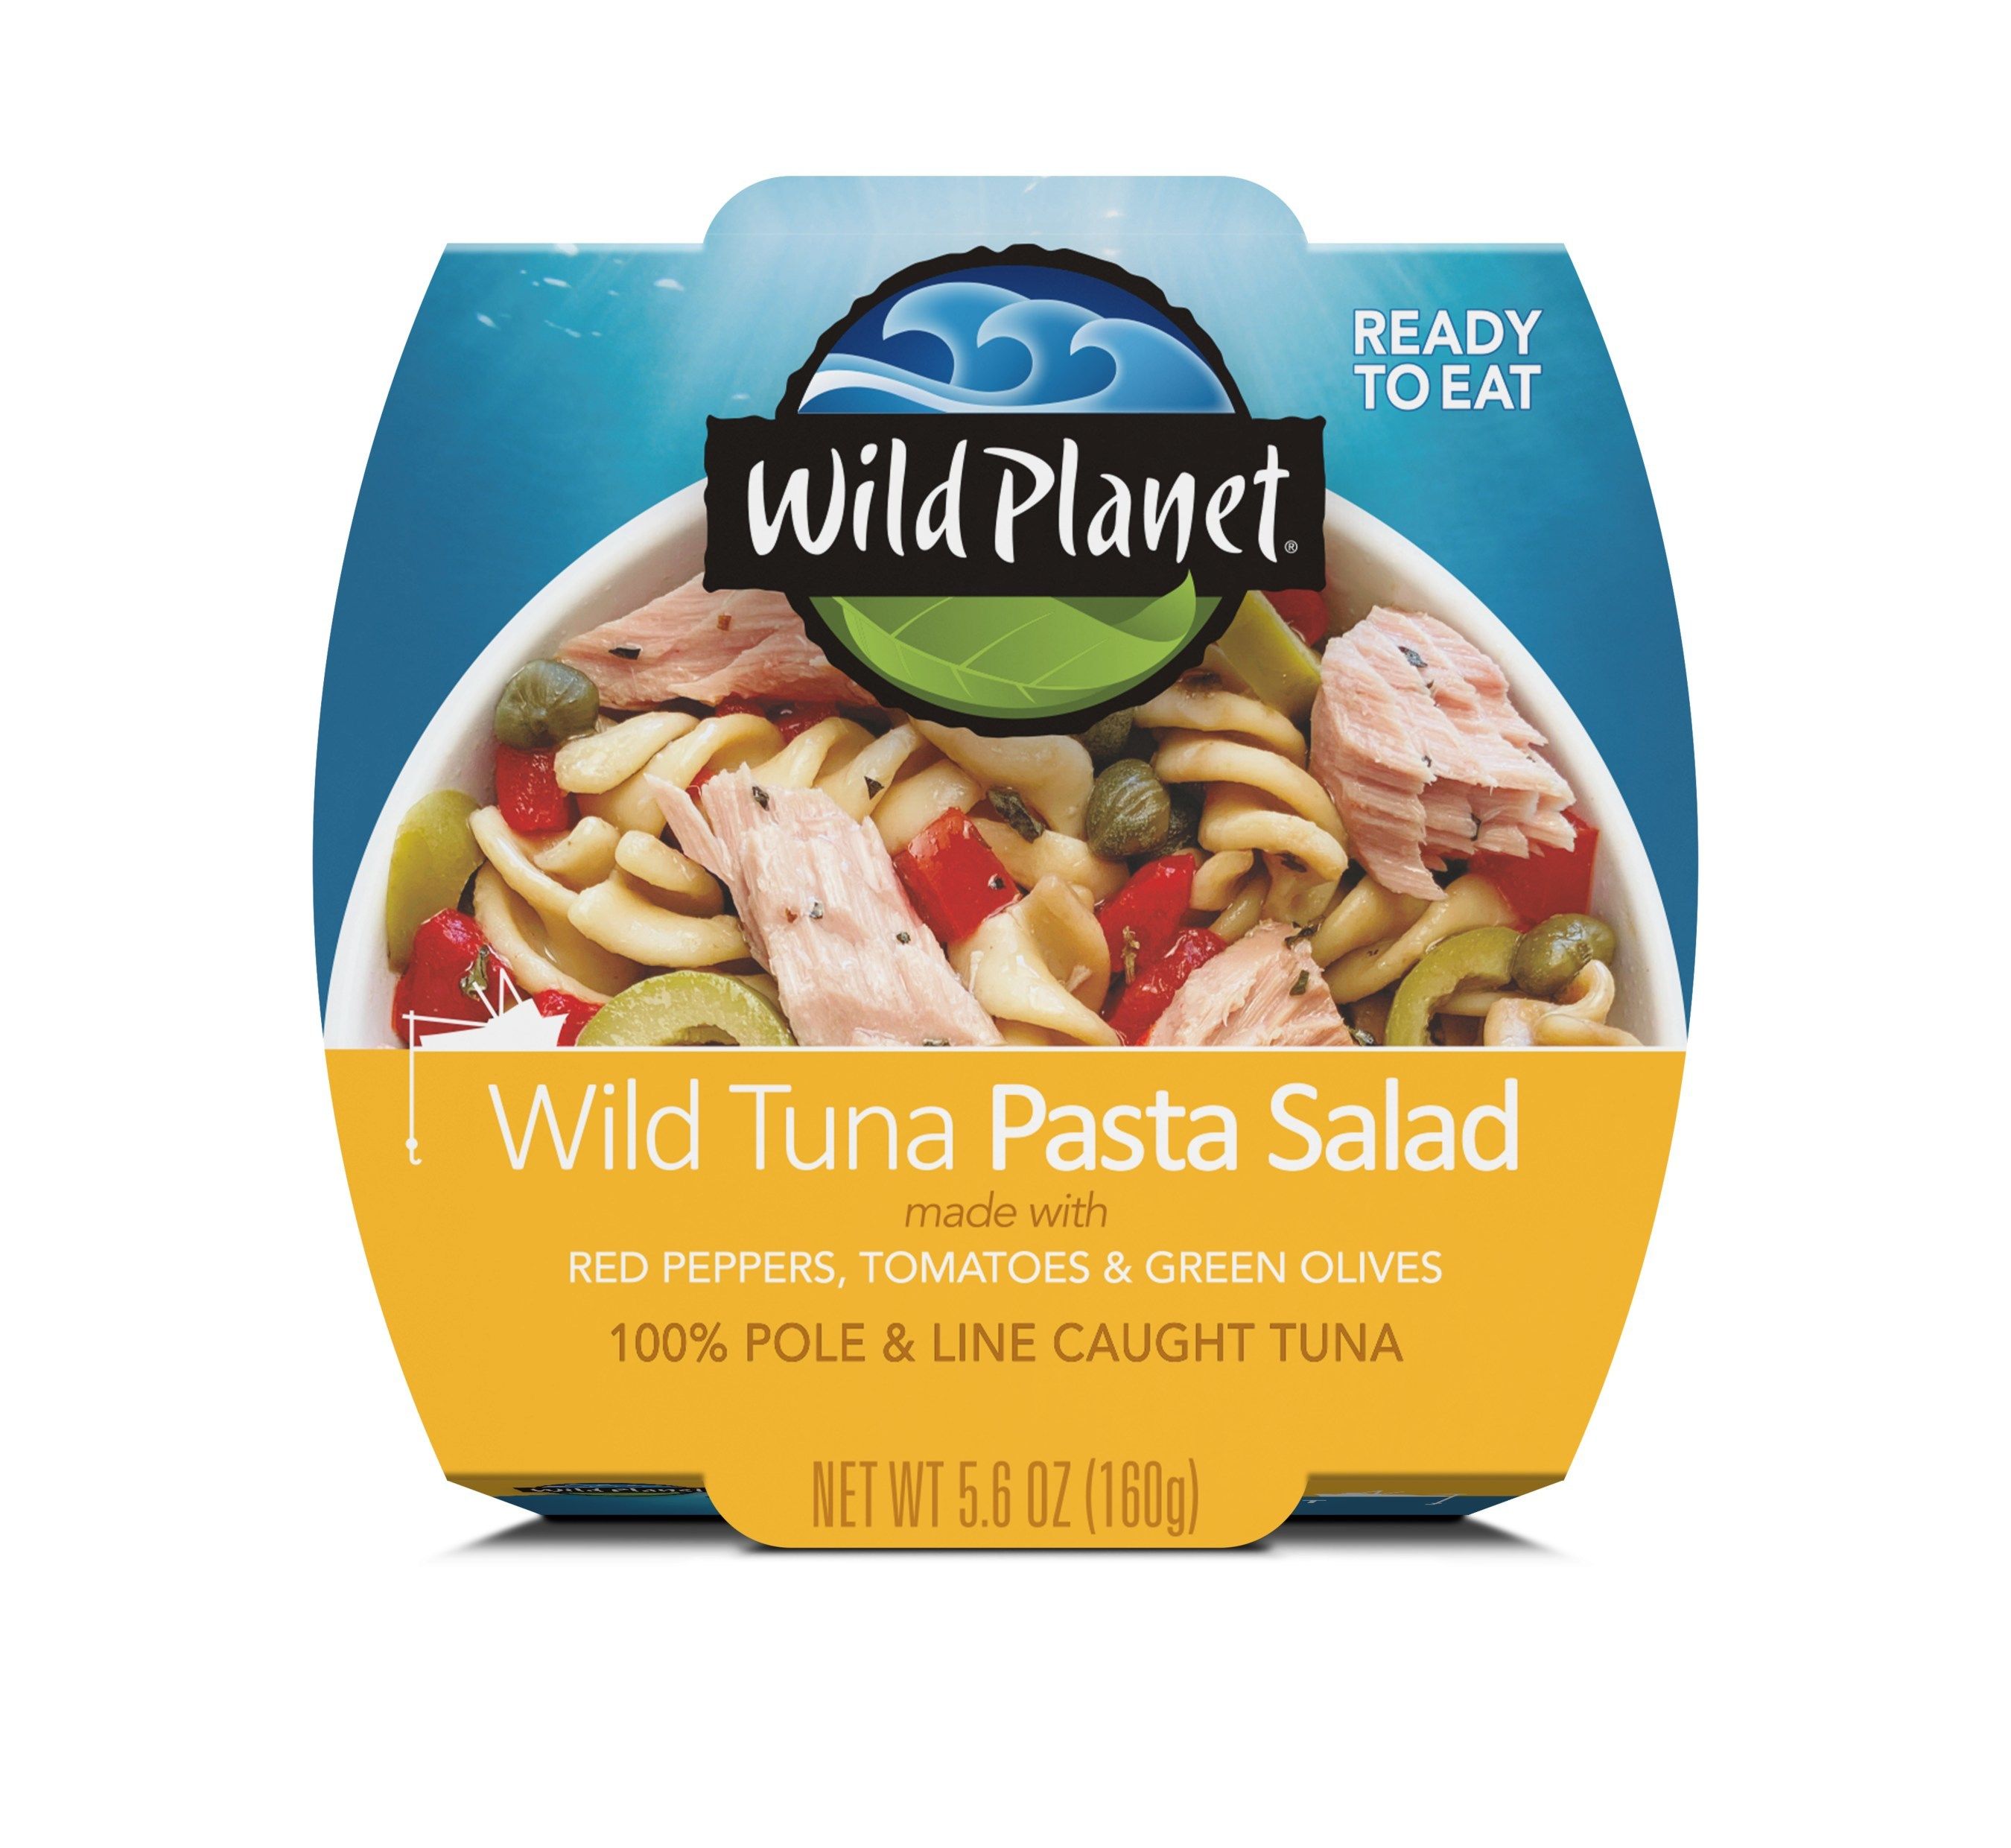 Wild Planet Foods Introduces Ready-to-Eat Tuna Salad Bowls